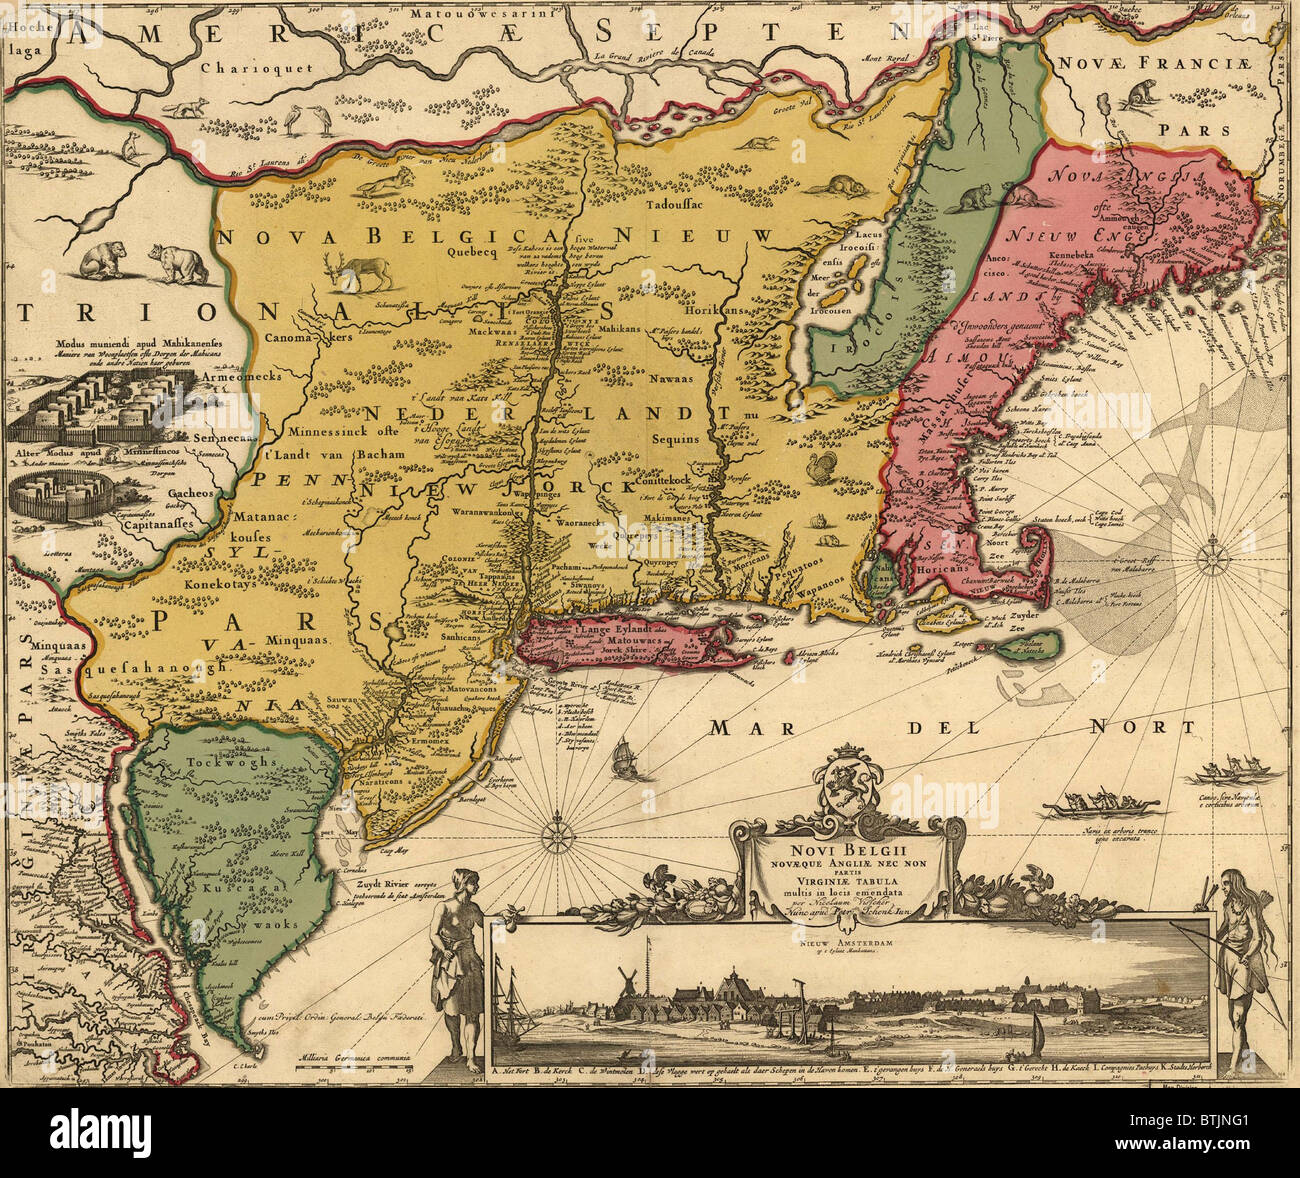 17th century map of land that became new england new jersey and new stock photo royalty free. Black Bedroom Furniture Sets. Home Design Ideas